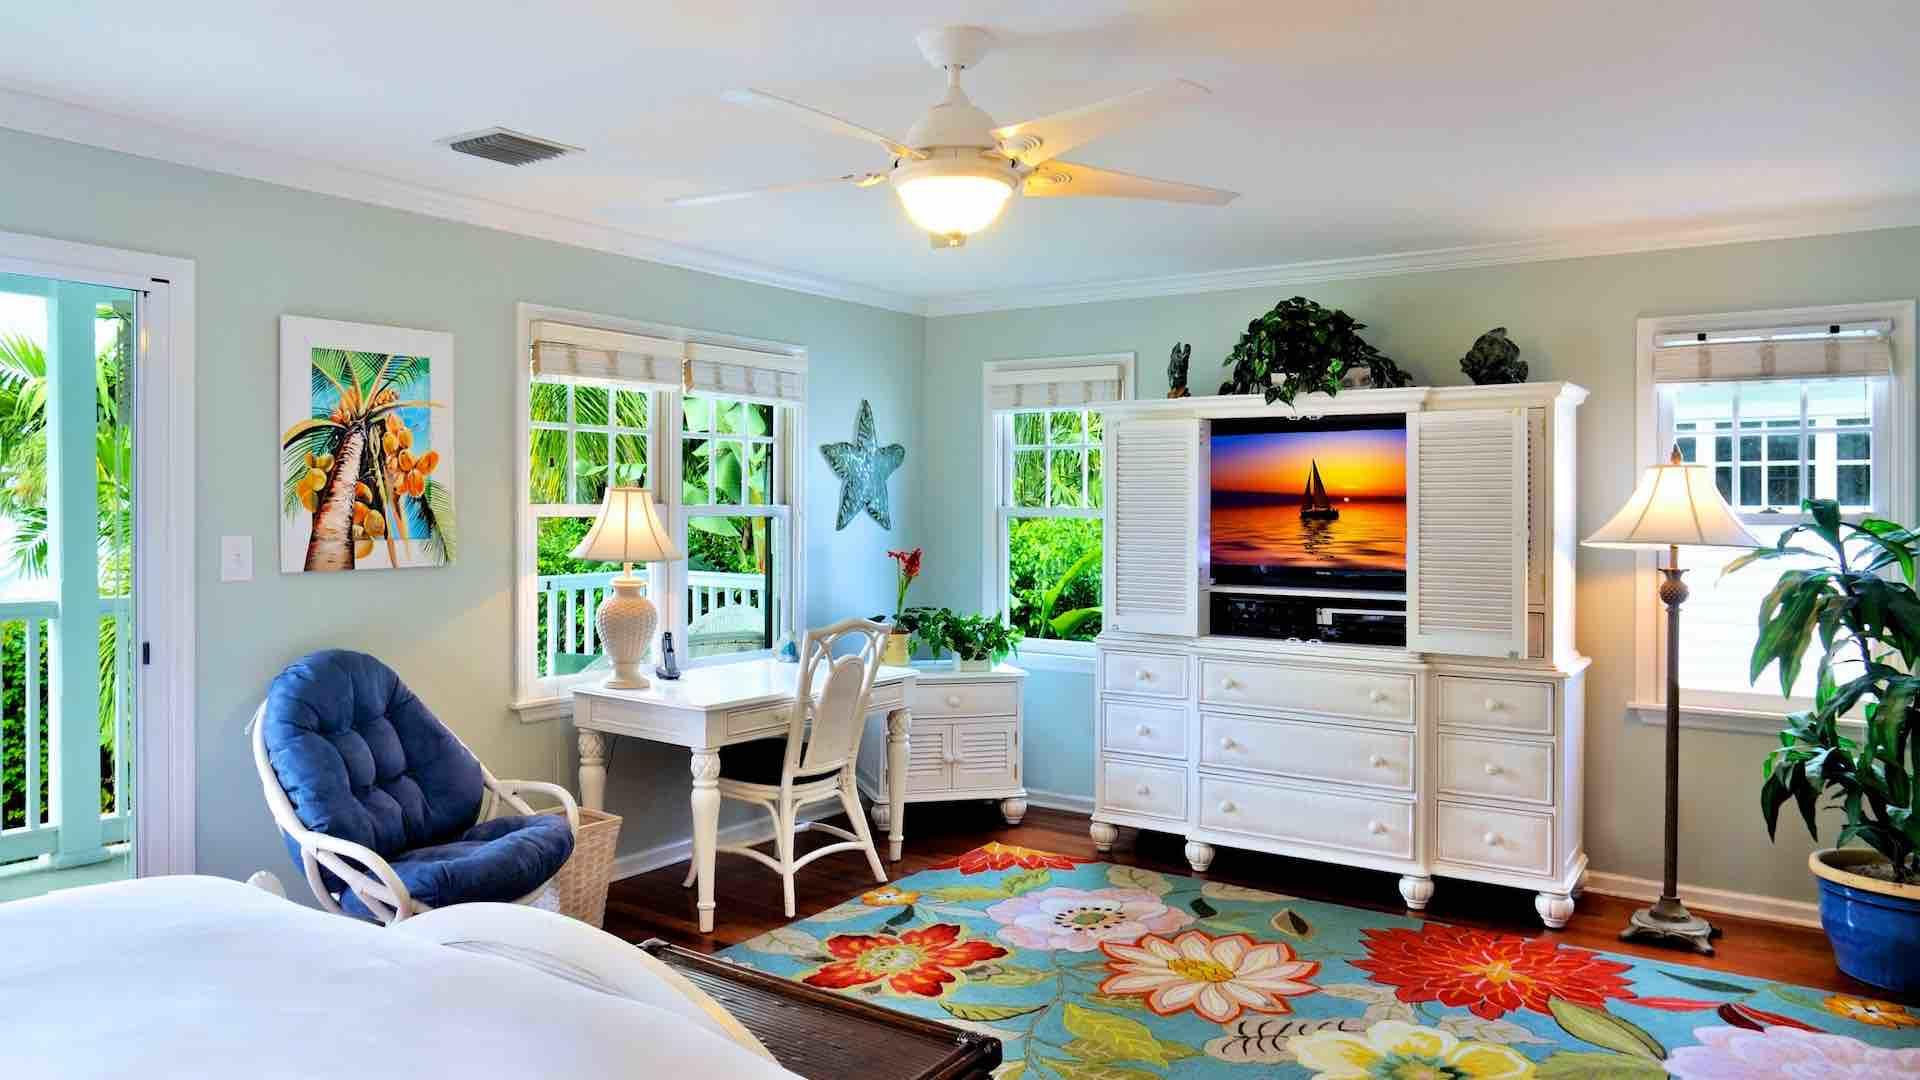 The spacious master bedroom suite features a large flat screen TV and a balcony...